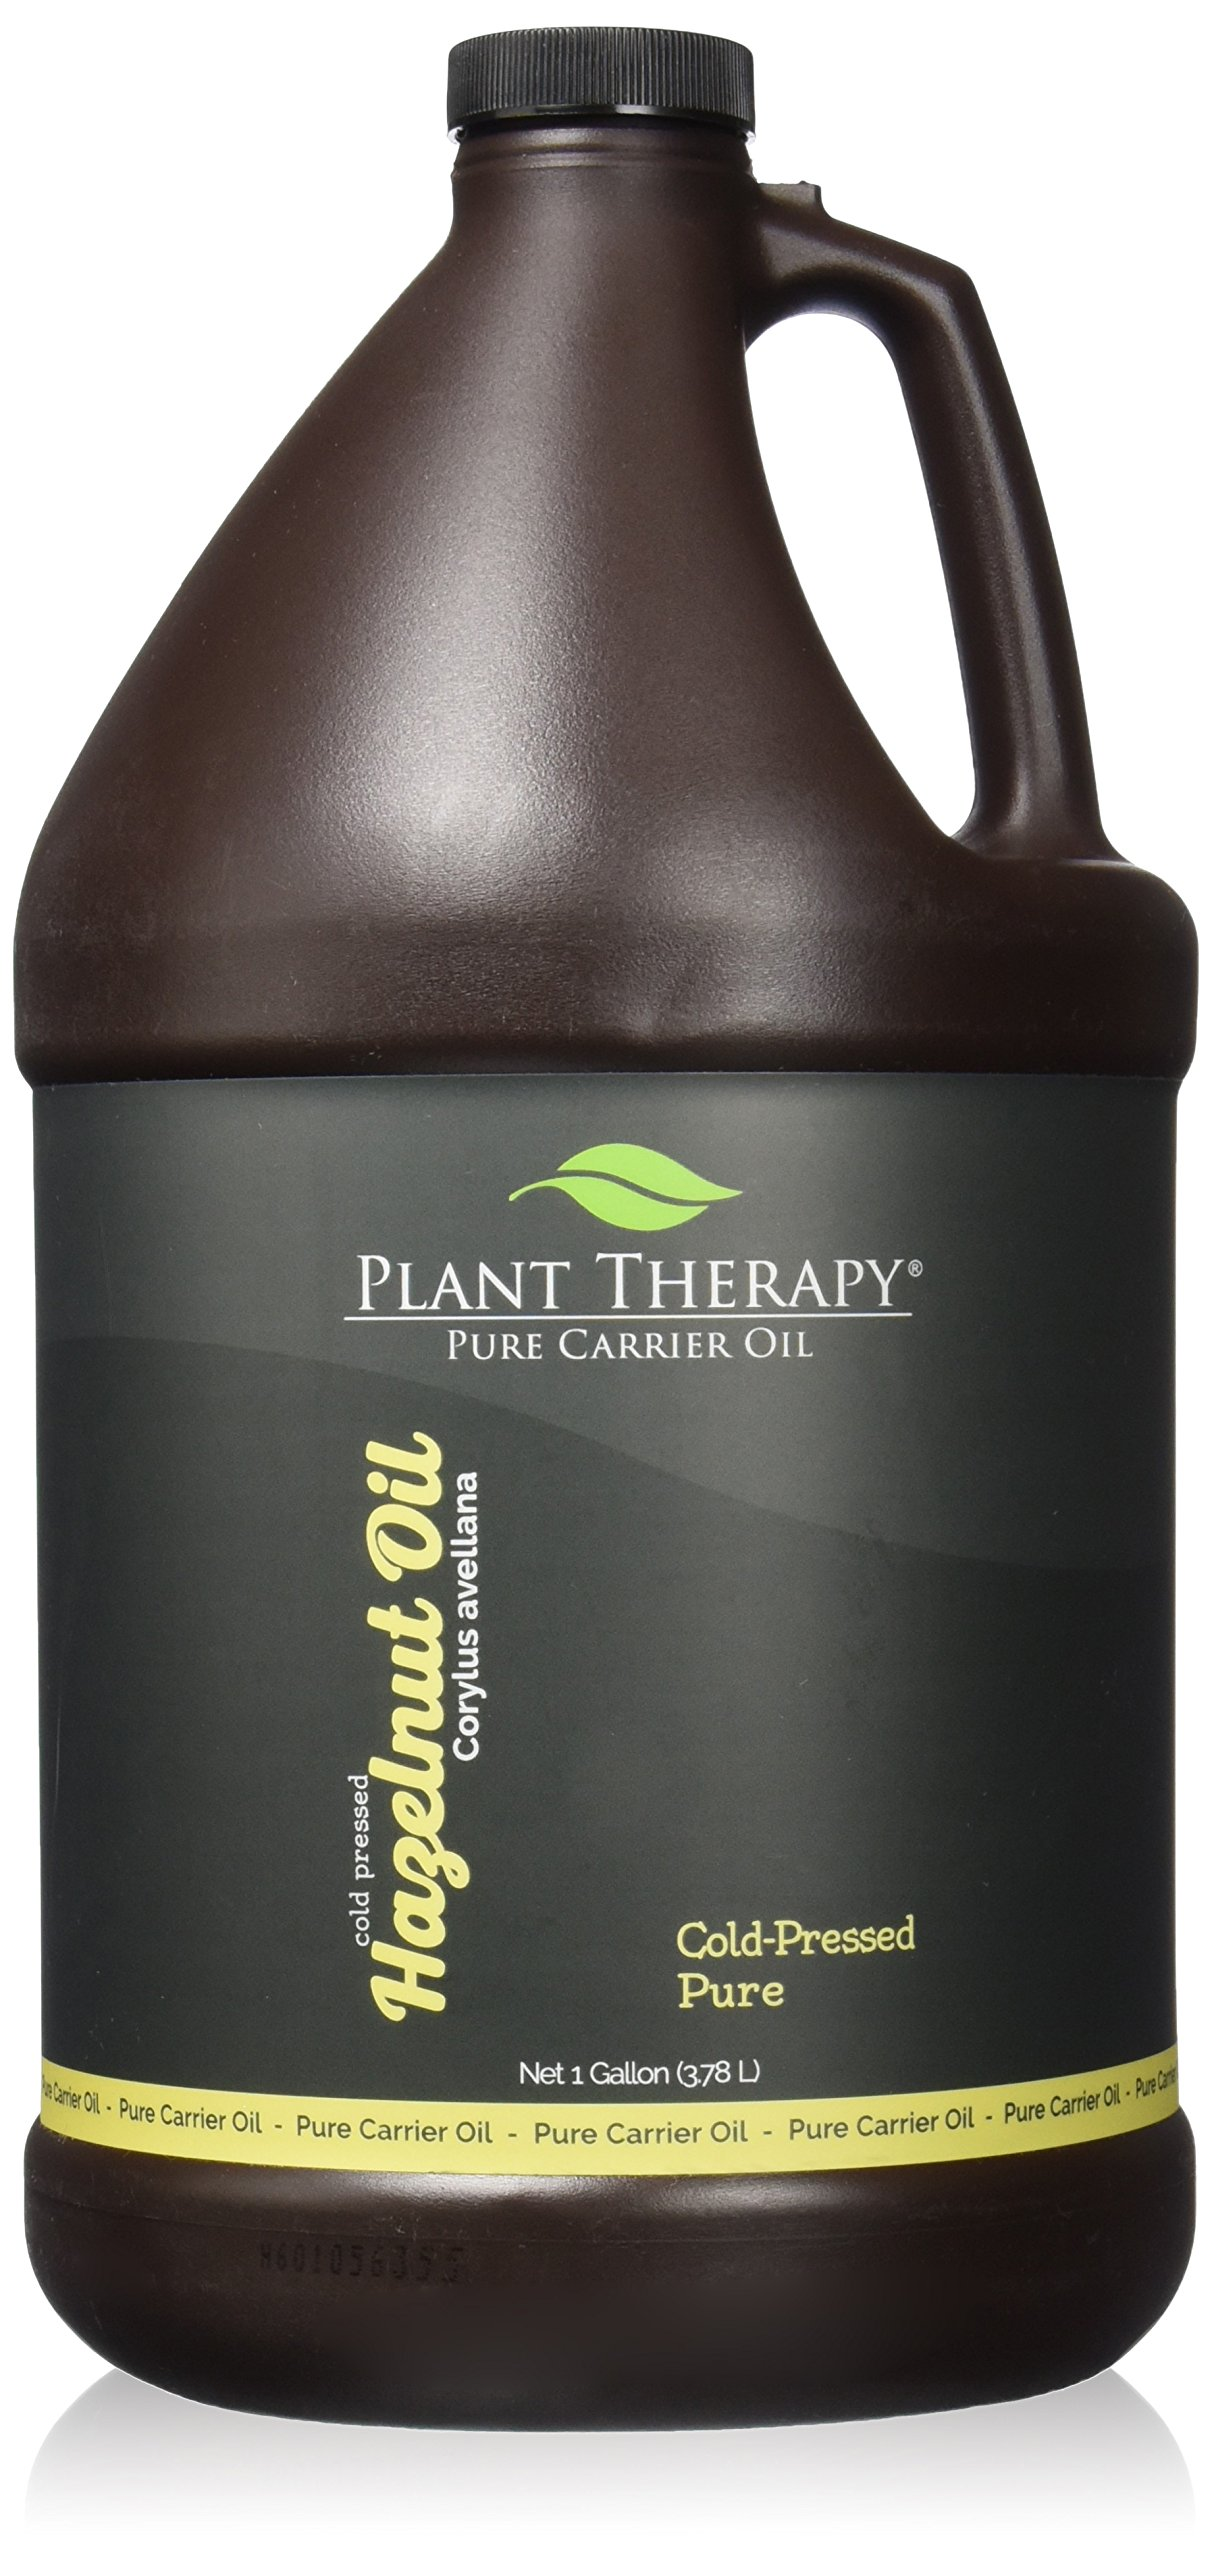 Plant Therapy Hazelnut Carrier Oil. A Base Oil for Aromatherapy, Essential Oil or Massage Use. 1 gal.